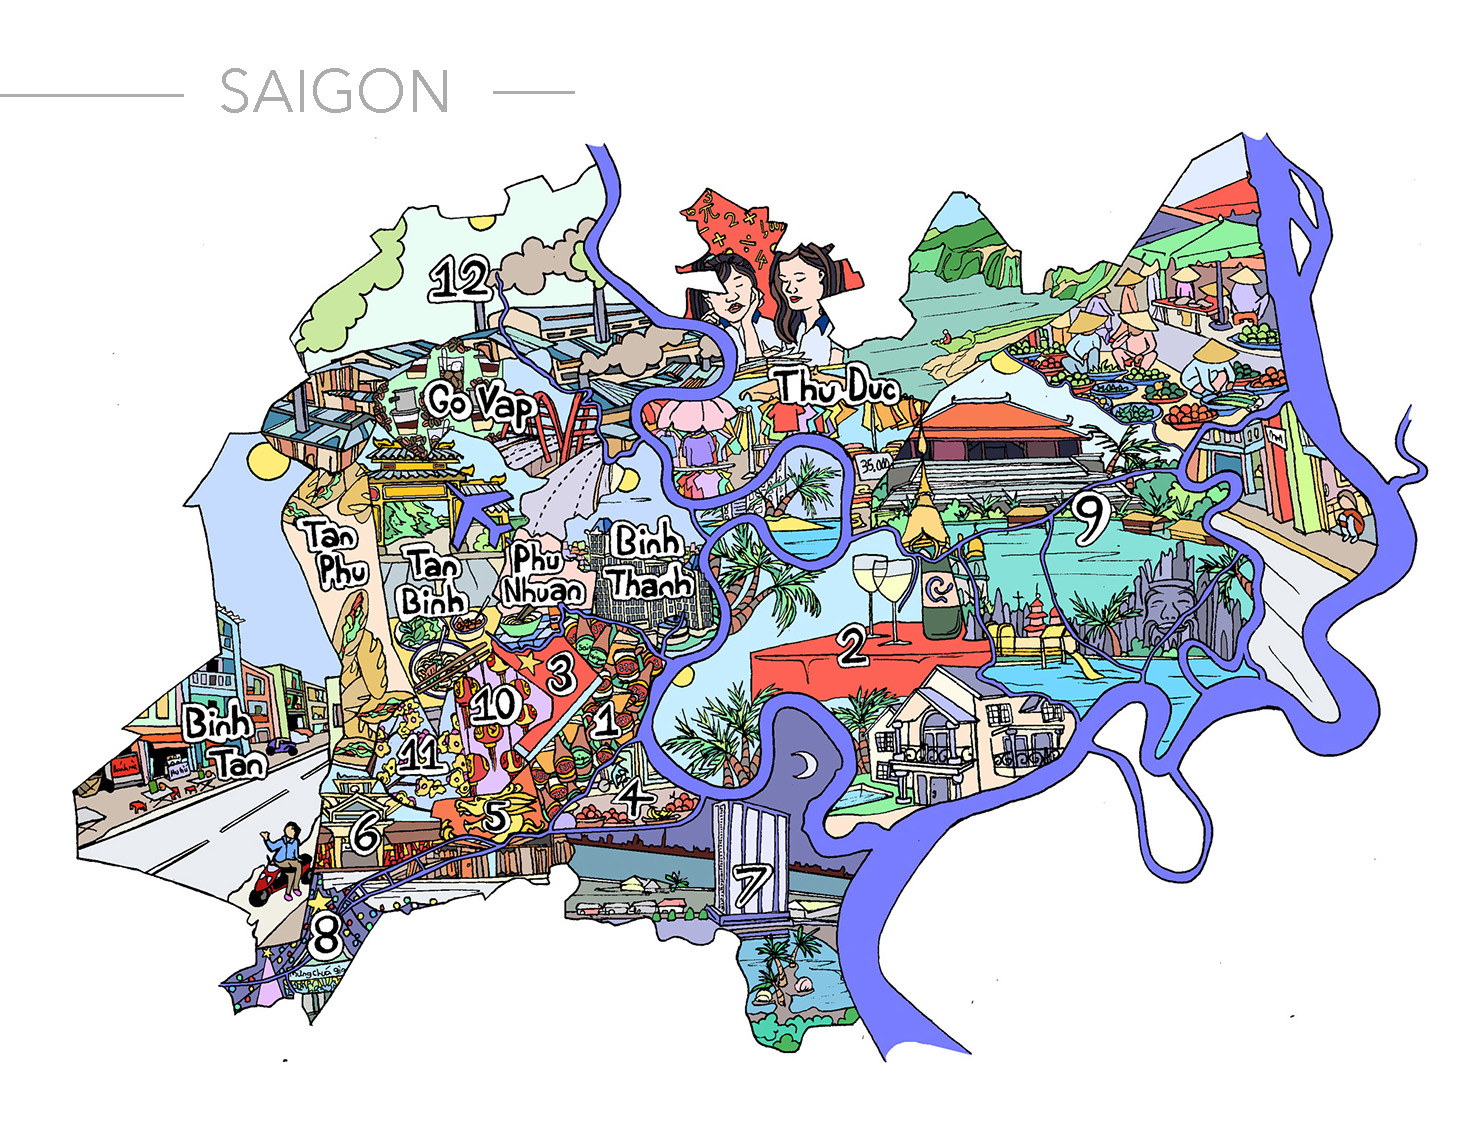 Saigon Illustration